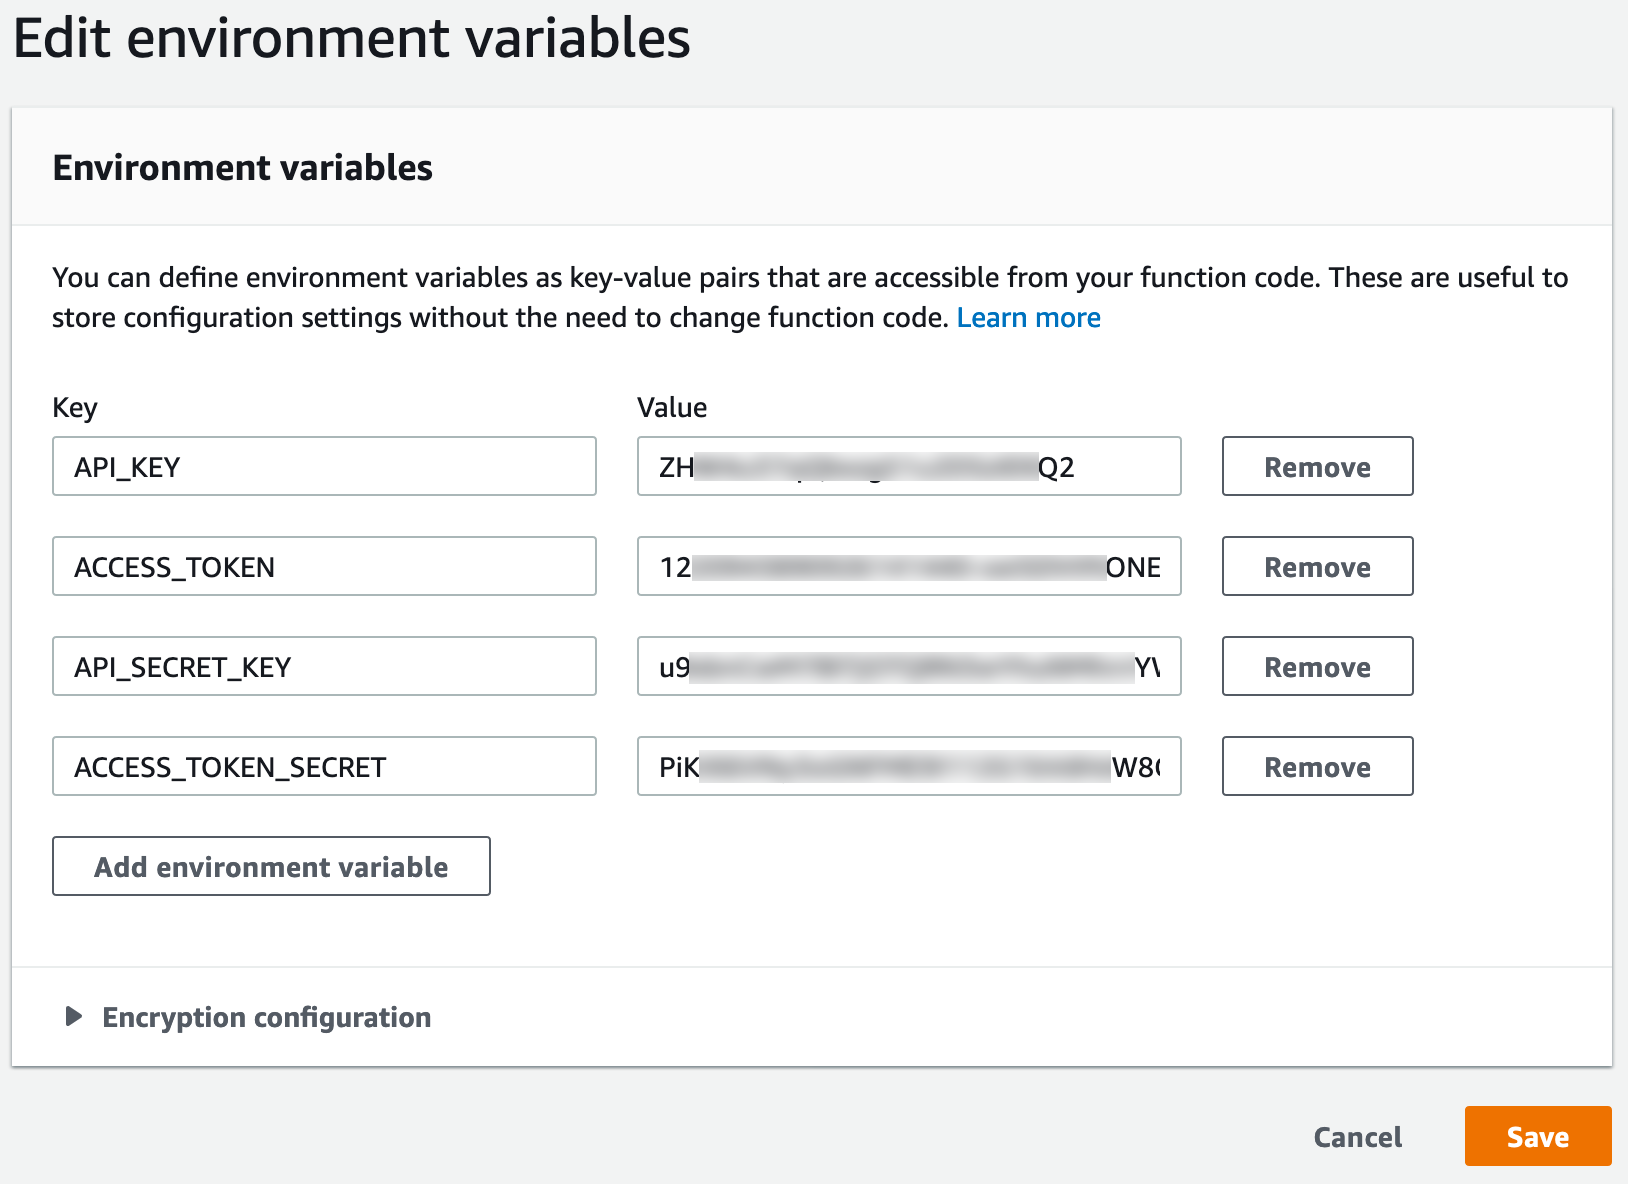 Our environment variables